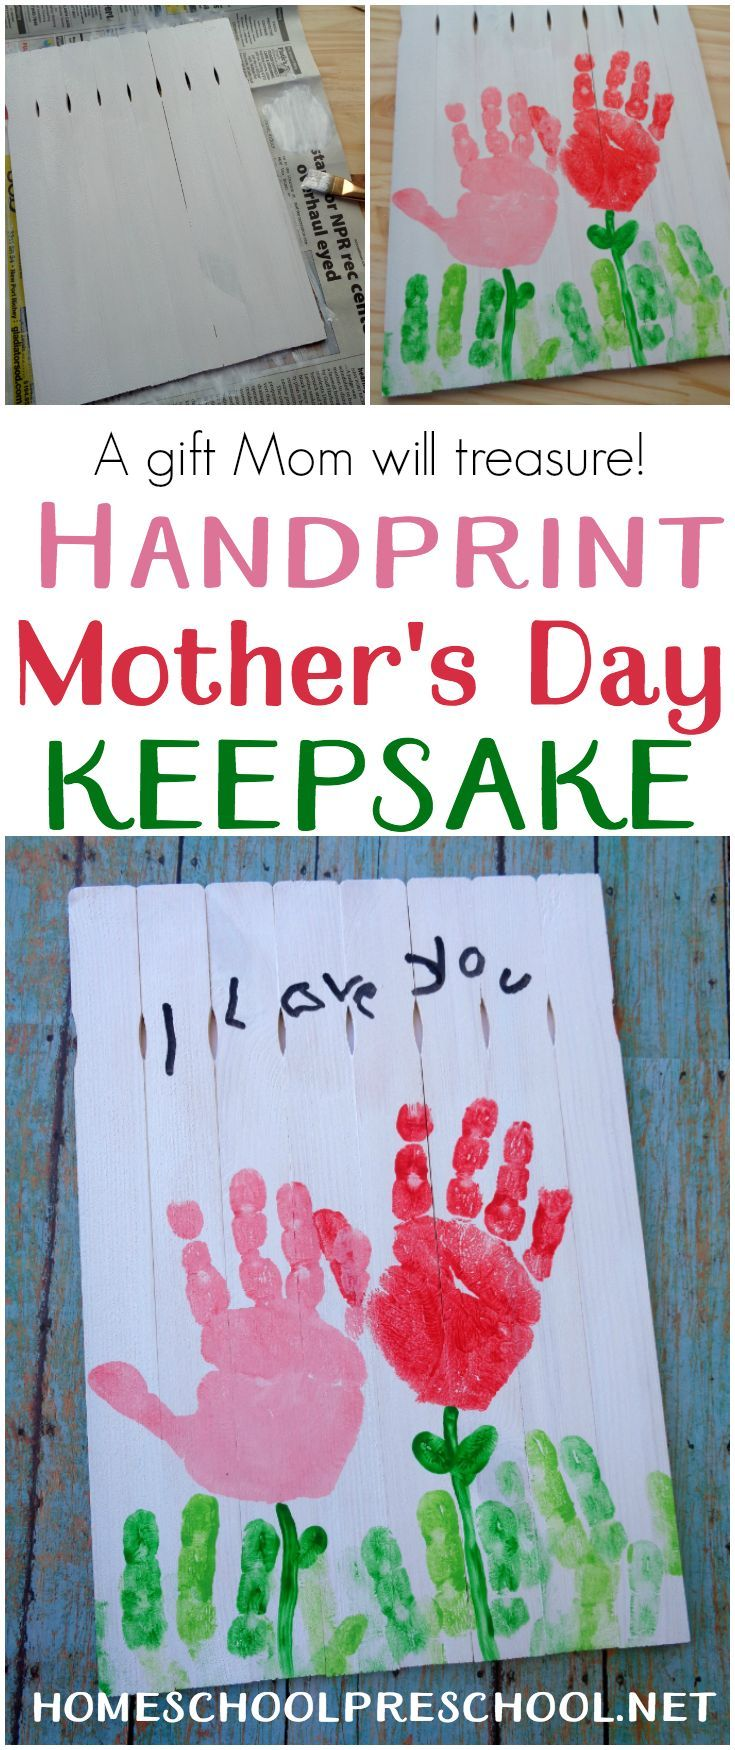 Precious Handprint Mother S Day Craft For Kids To Make A Mom Kid